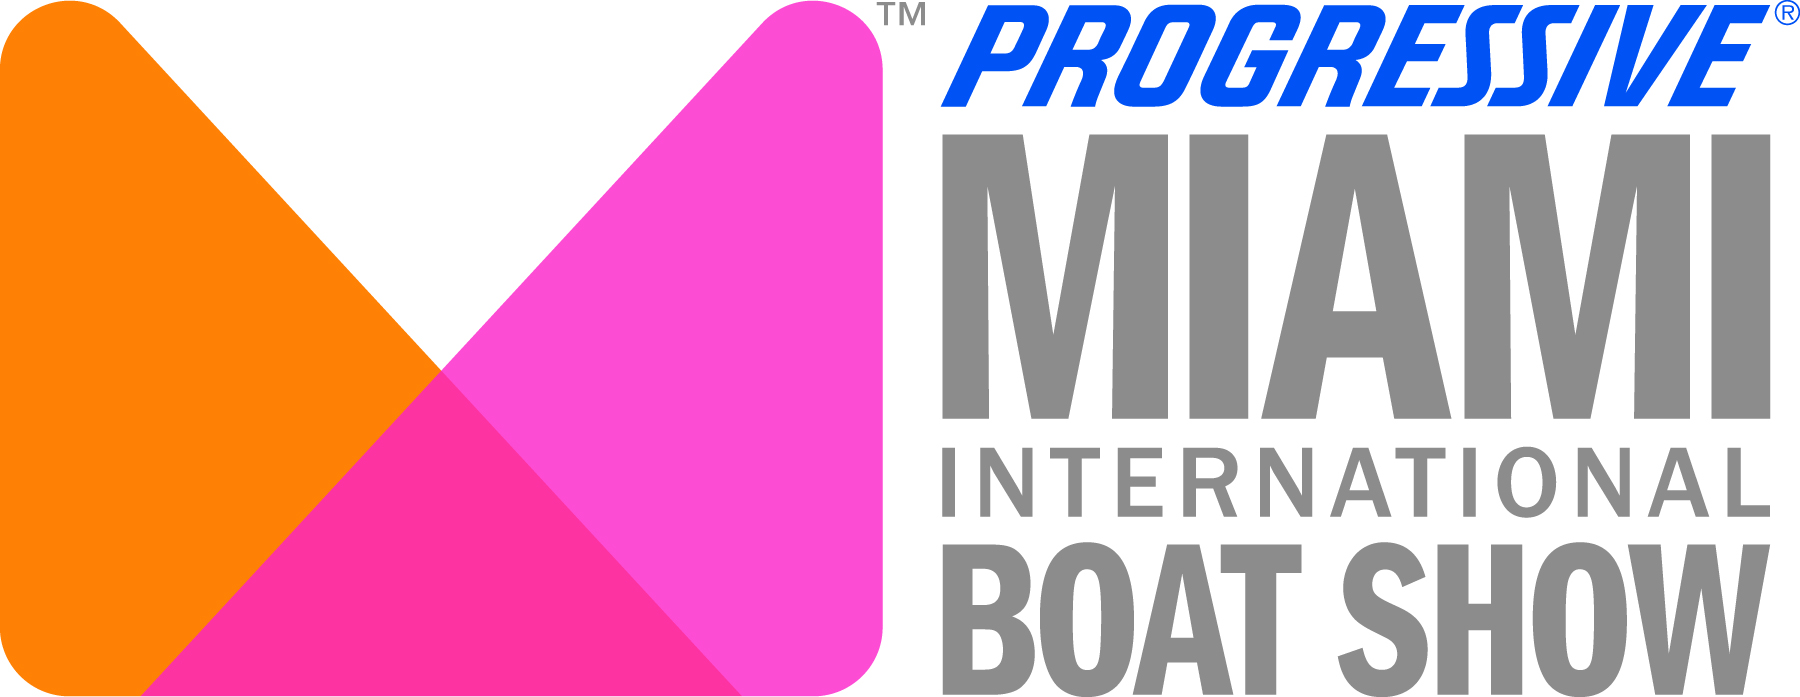 Upcoming Event - The Progressive Miami International Boat Show